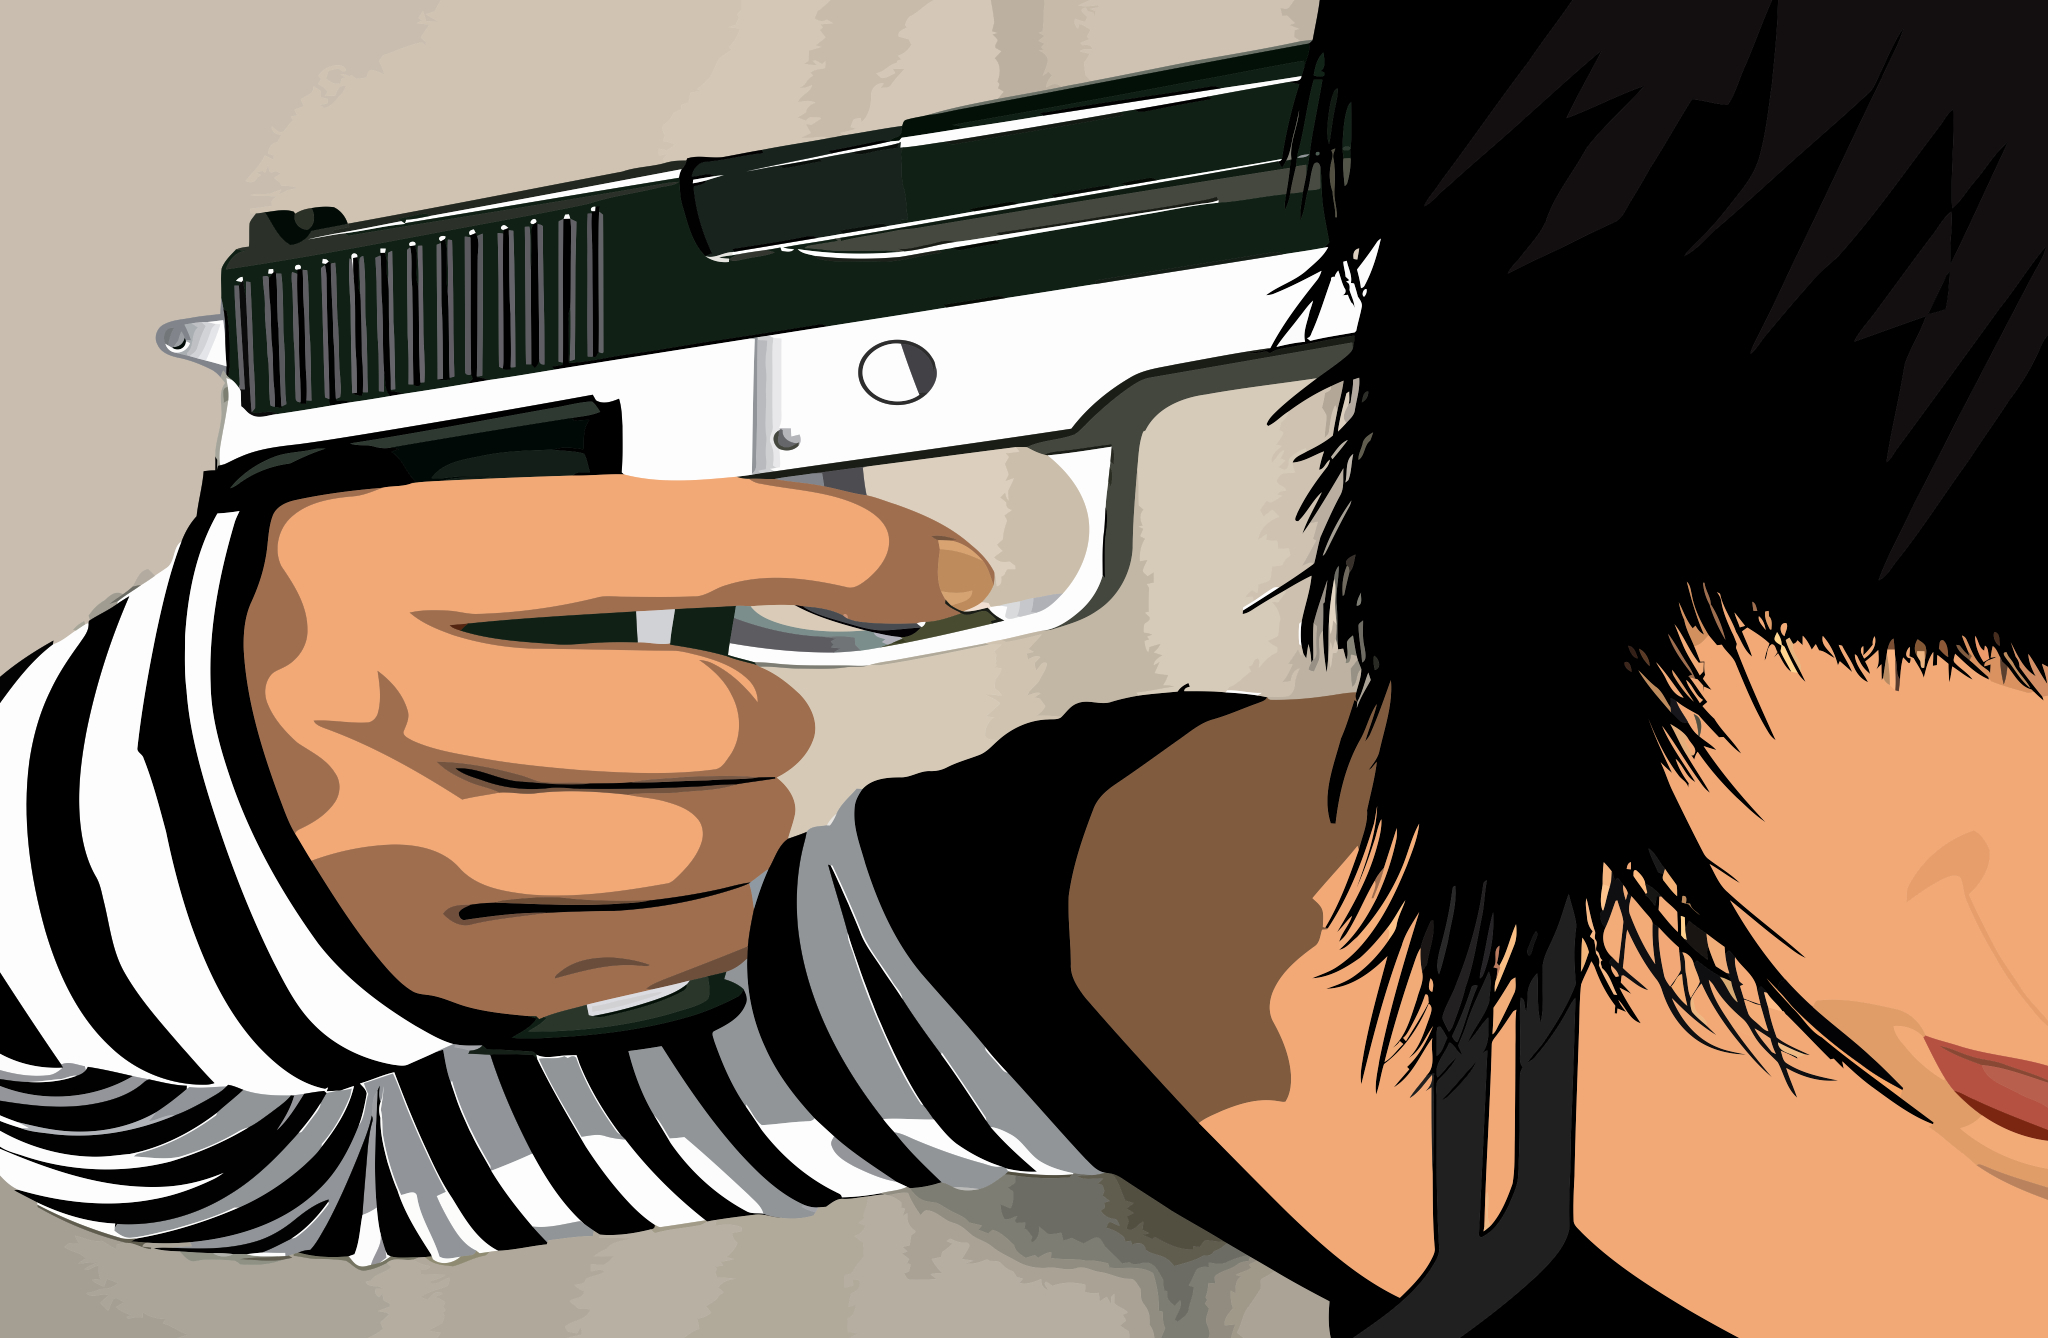 woman pistols Guns vectors HD Wallpaper